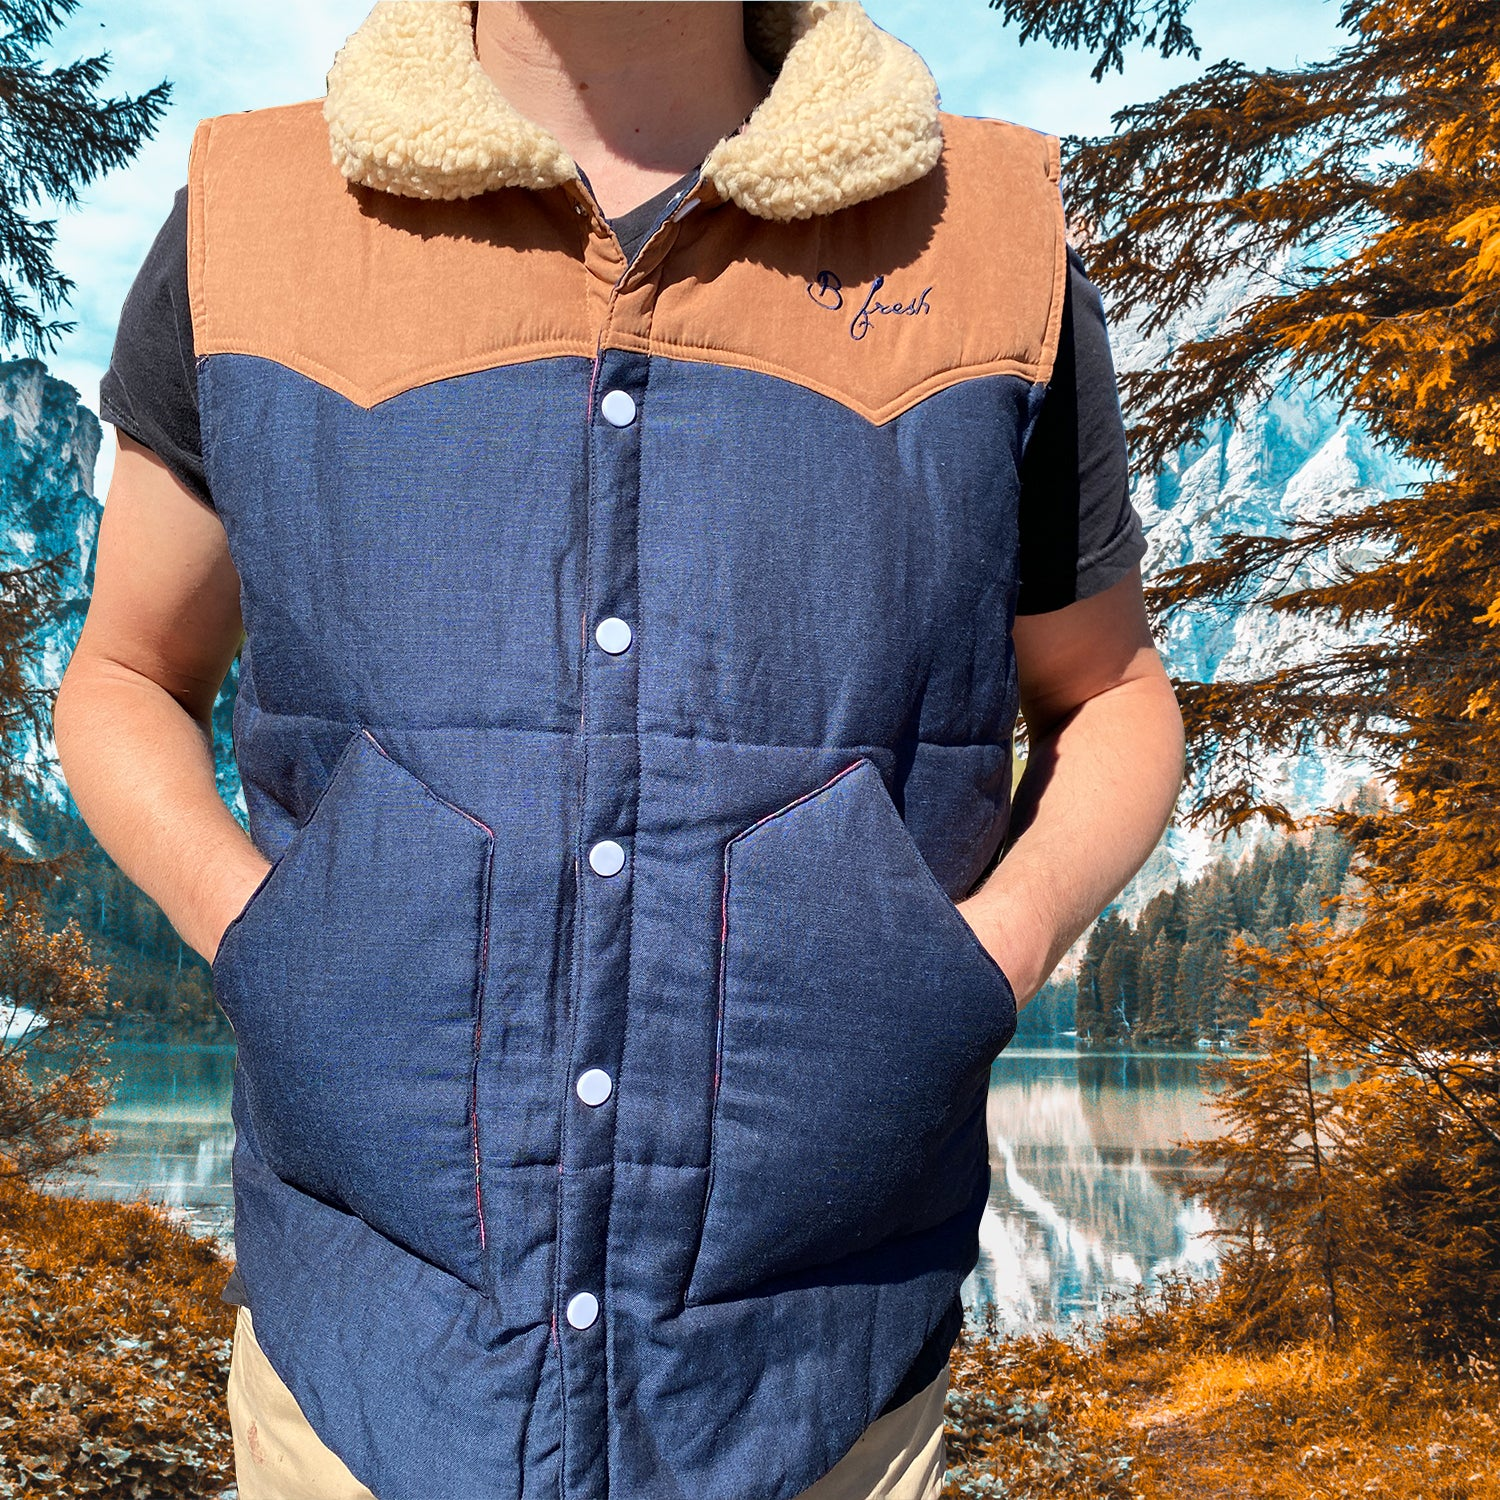 The Wrangler Reversible Western Vest